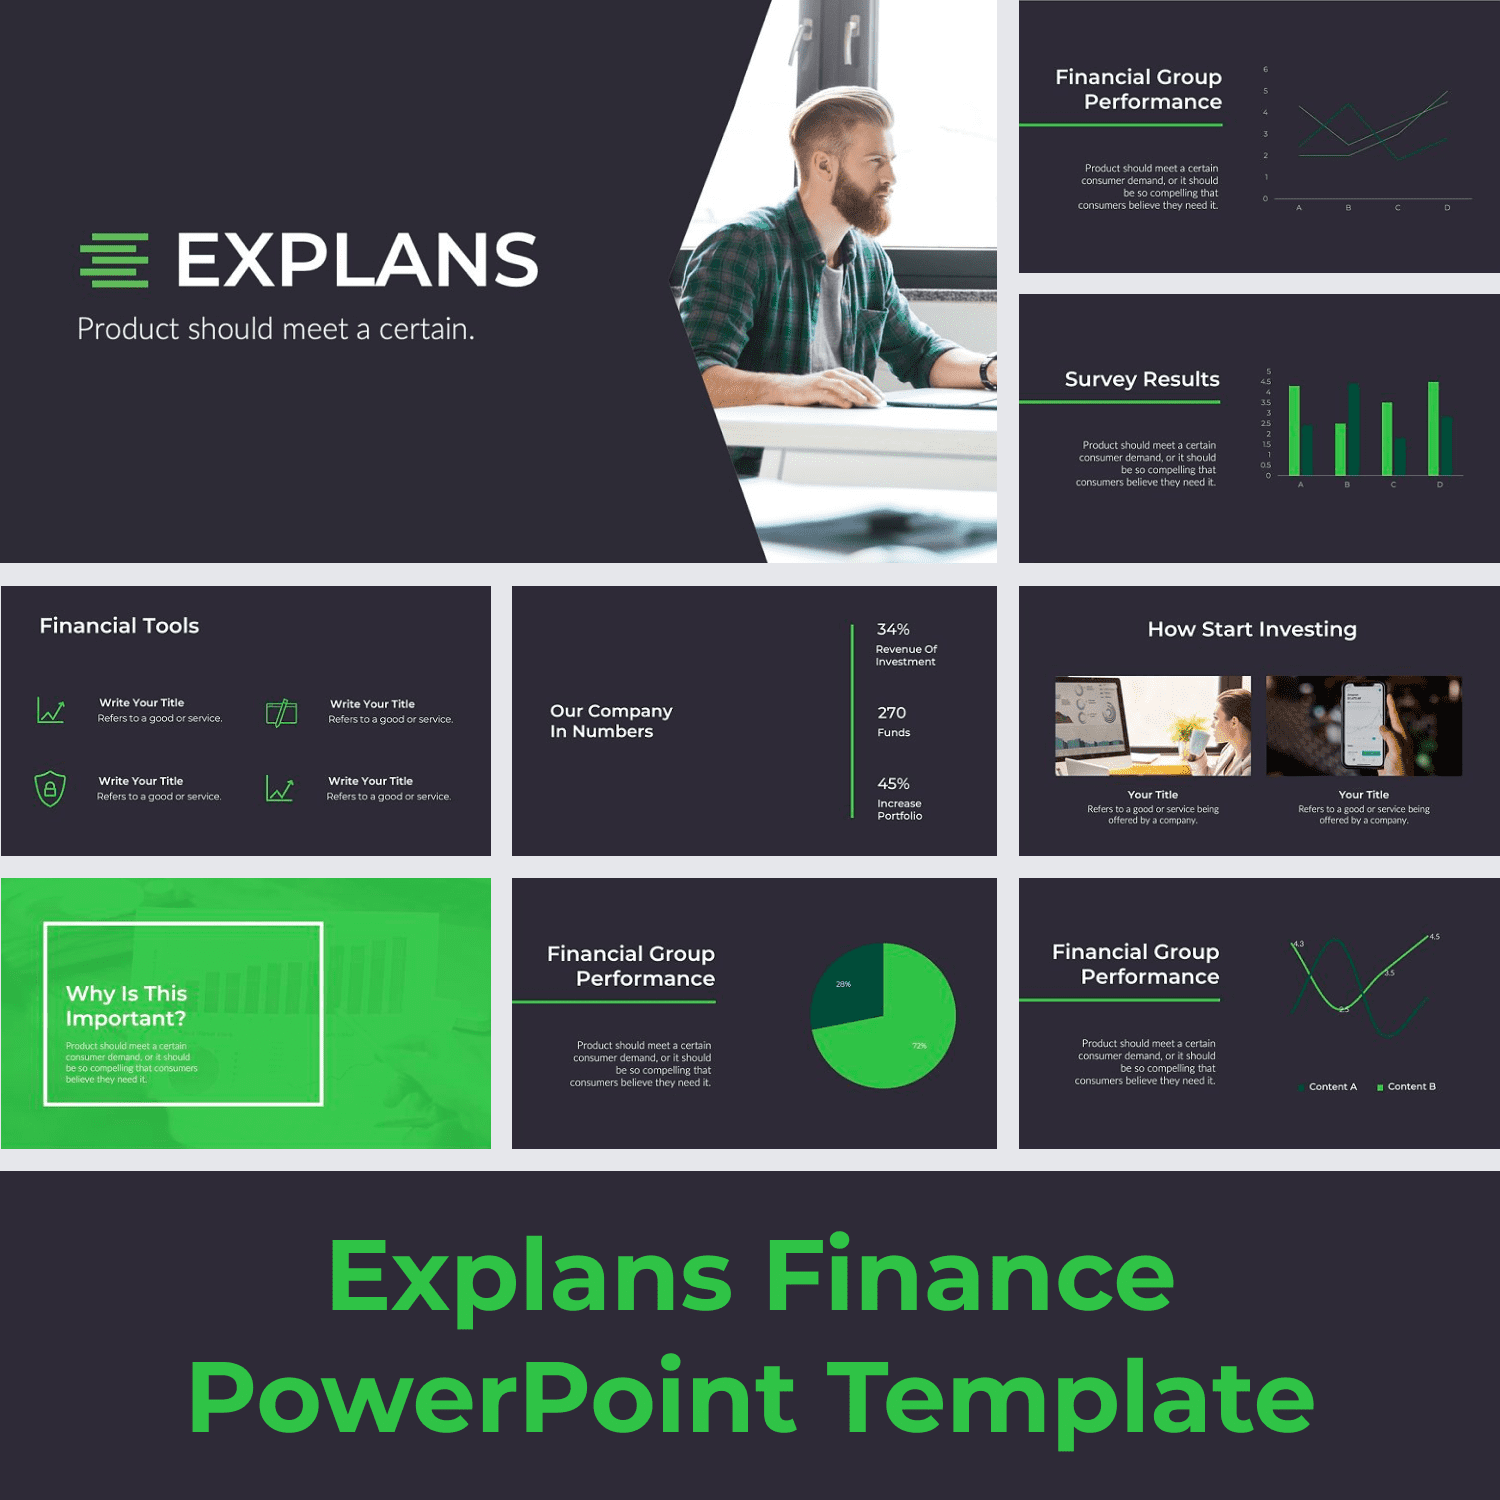 Explans Finance PowerPoint Template main cover.